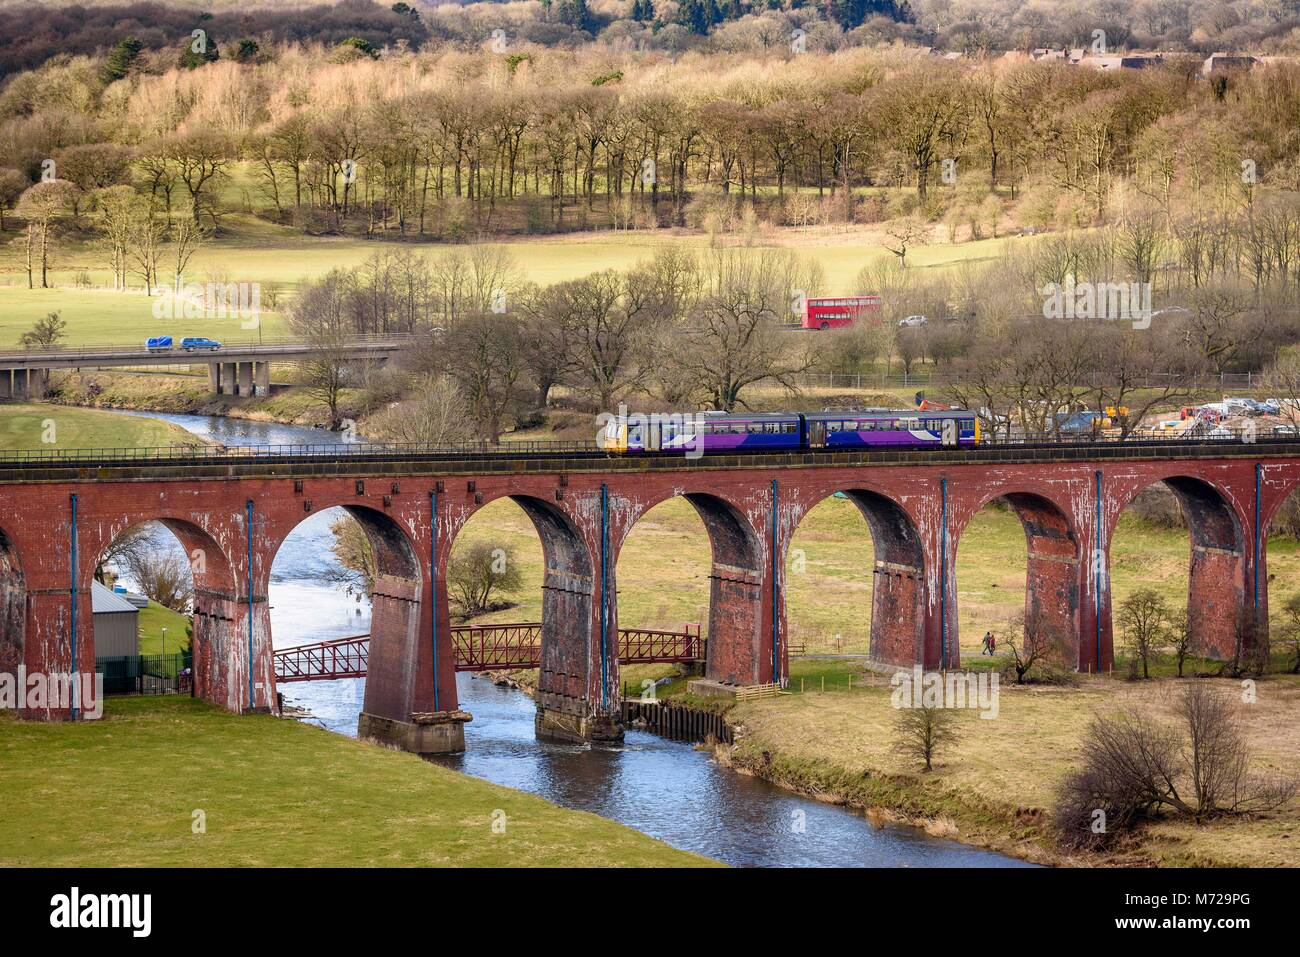 A Pacer diesel multiple unit train crossing the Whalley Arches viaduct over the river Calder. - Stock Image